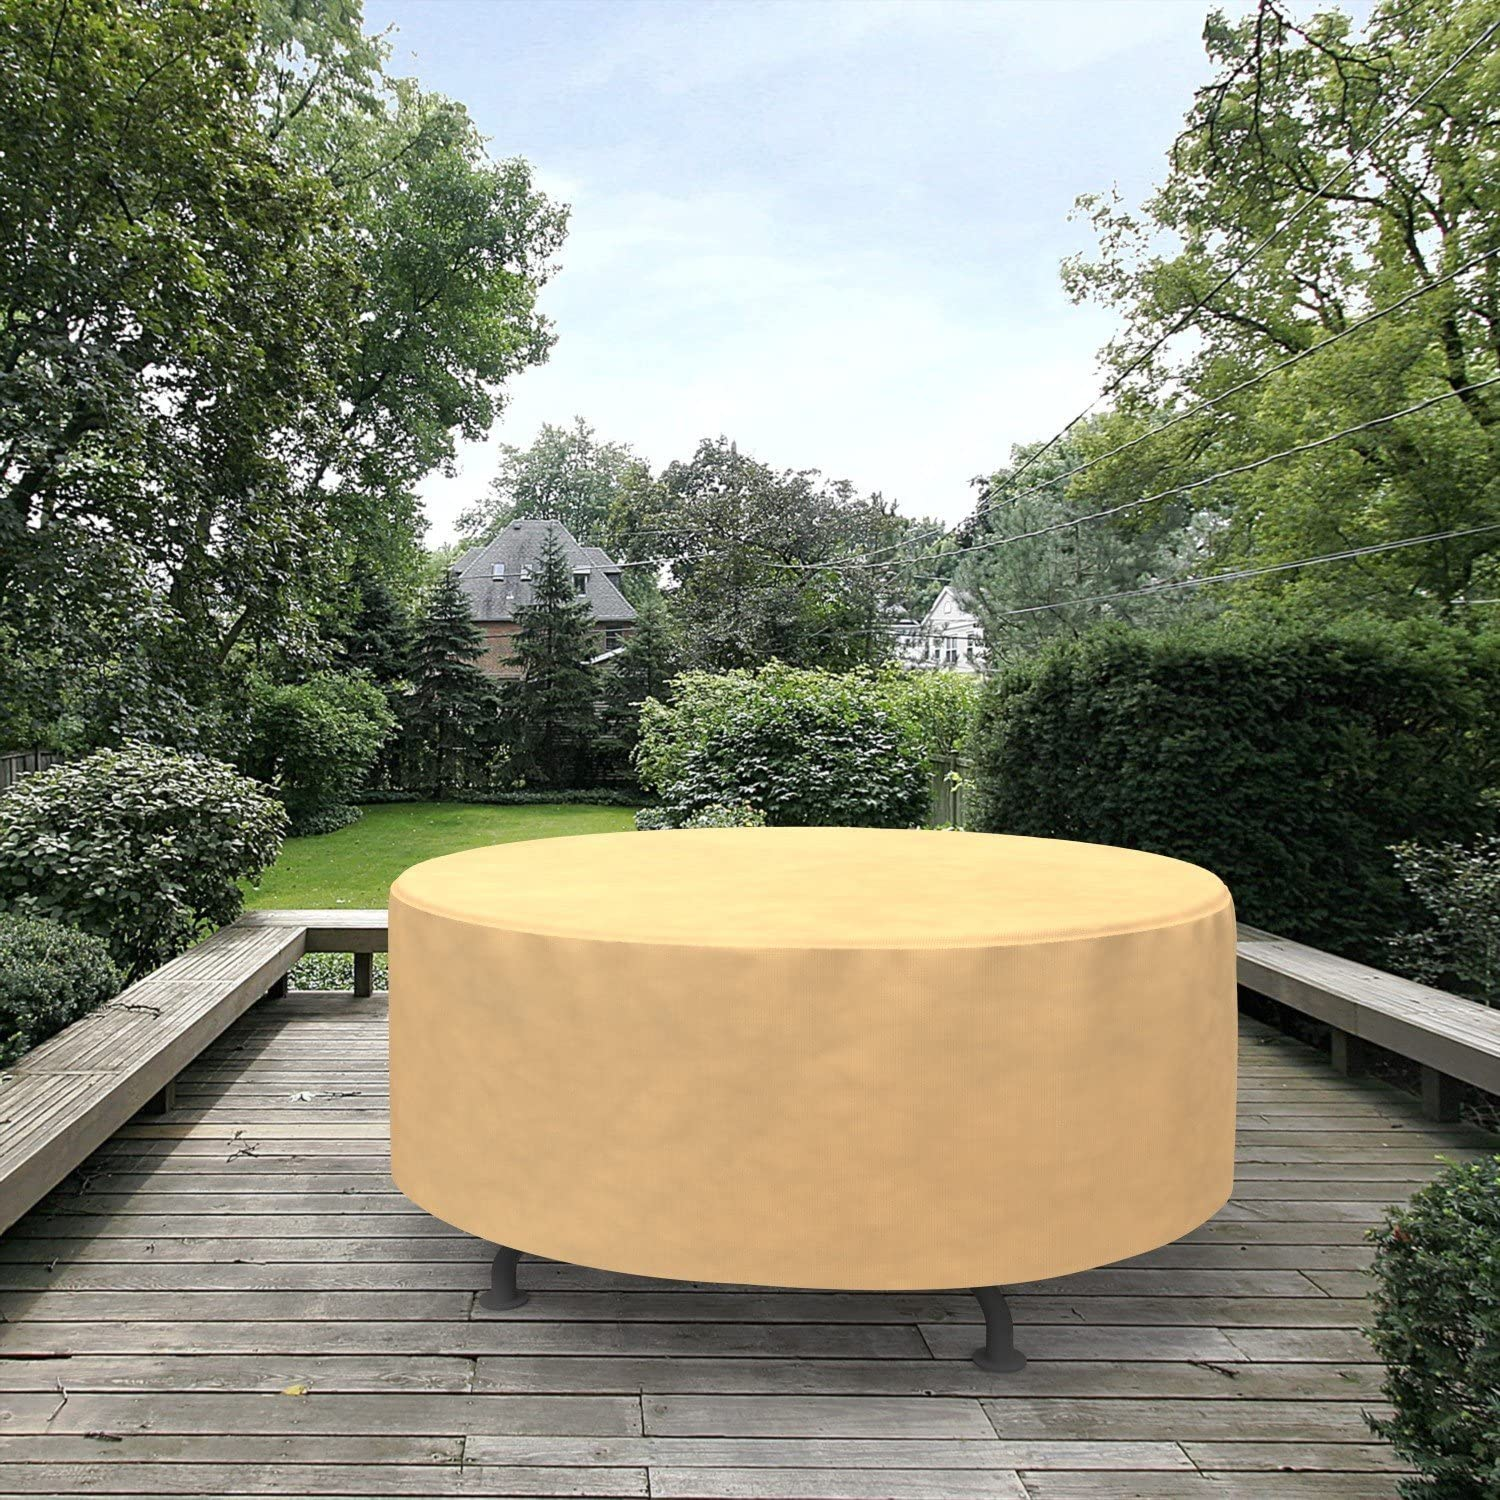 Grand Patio Round Patio Table Cover Weather Resistant Patio Table And Chair Covers Waterproof And Durable Patio Dining Set Cover Grand Patio